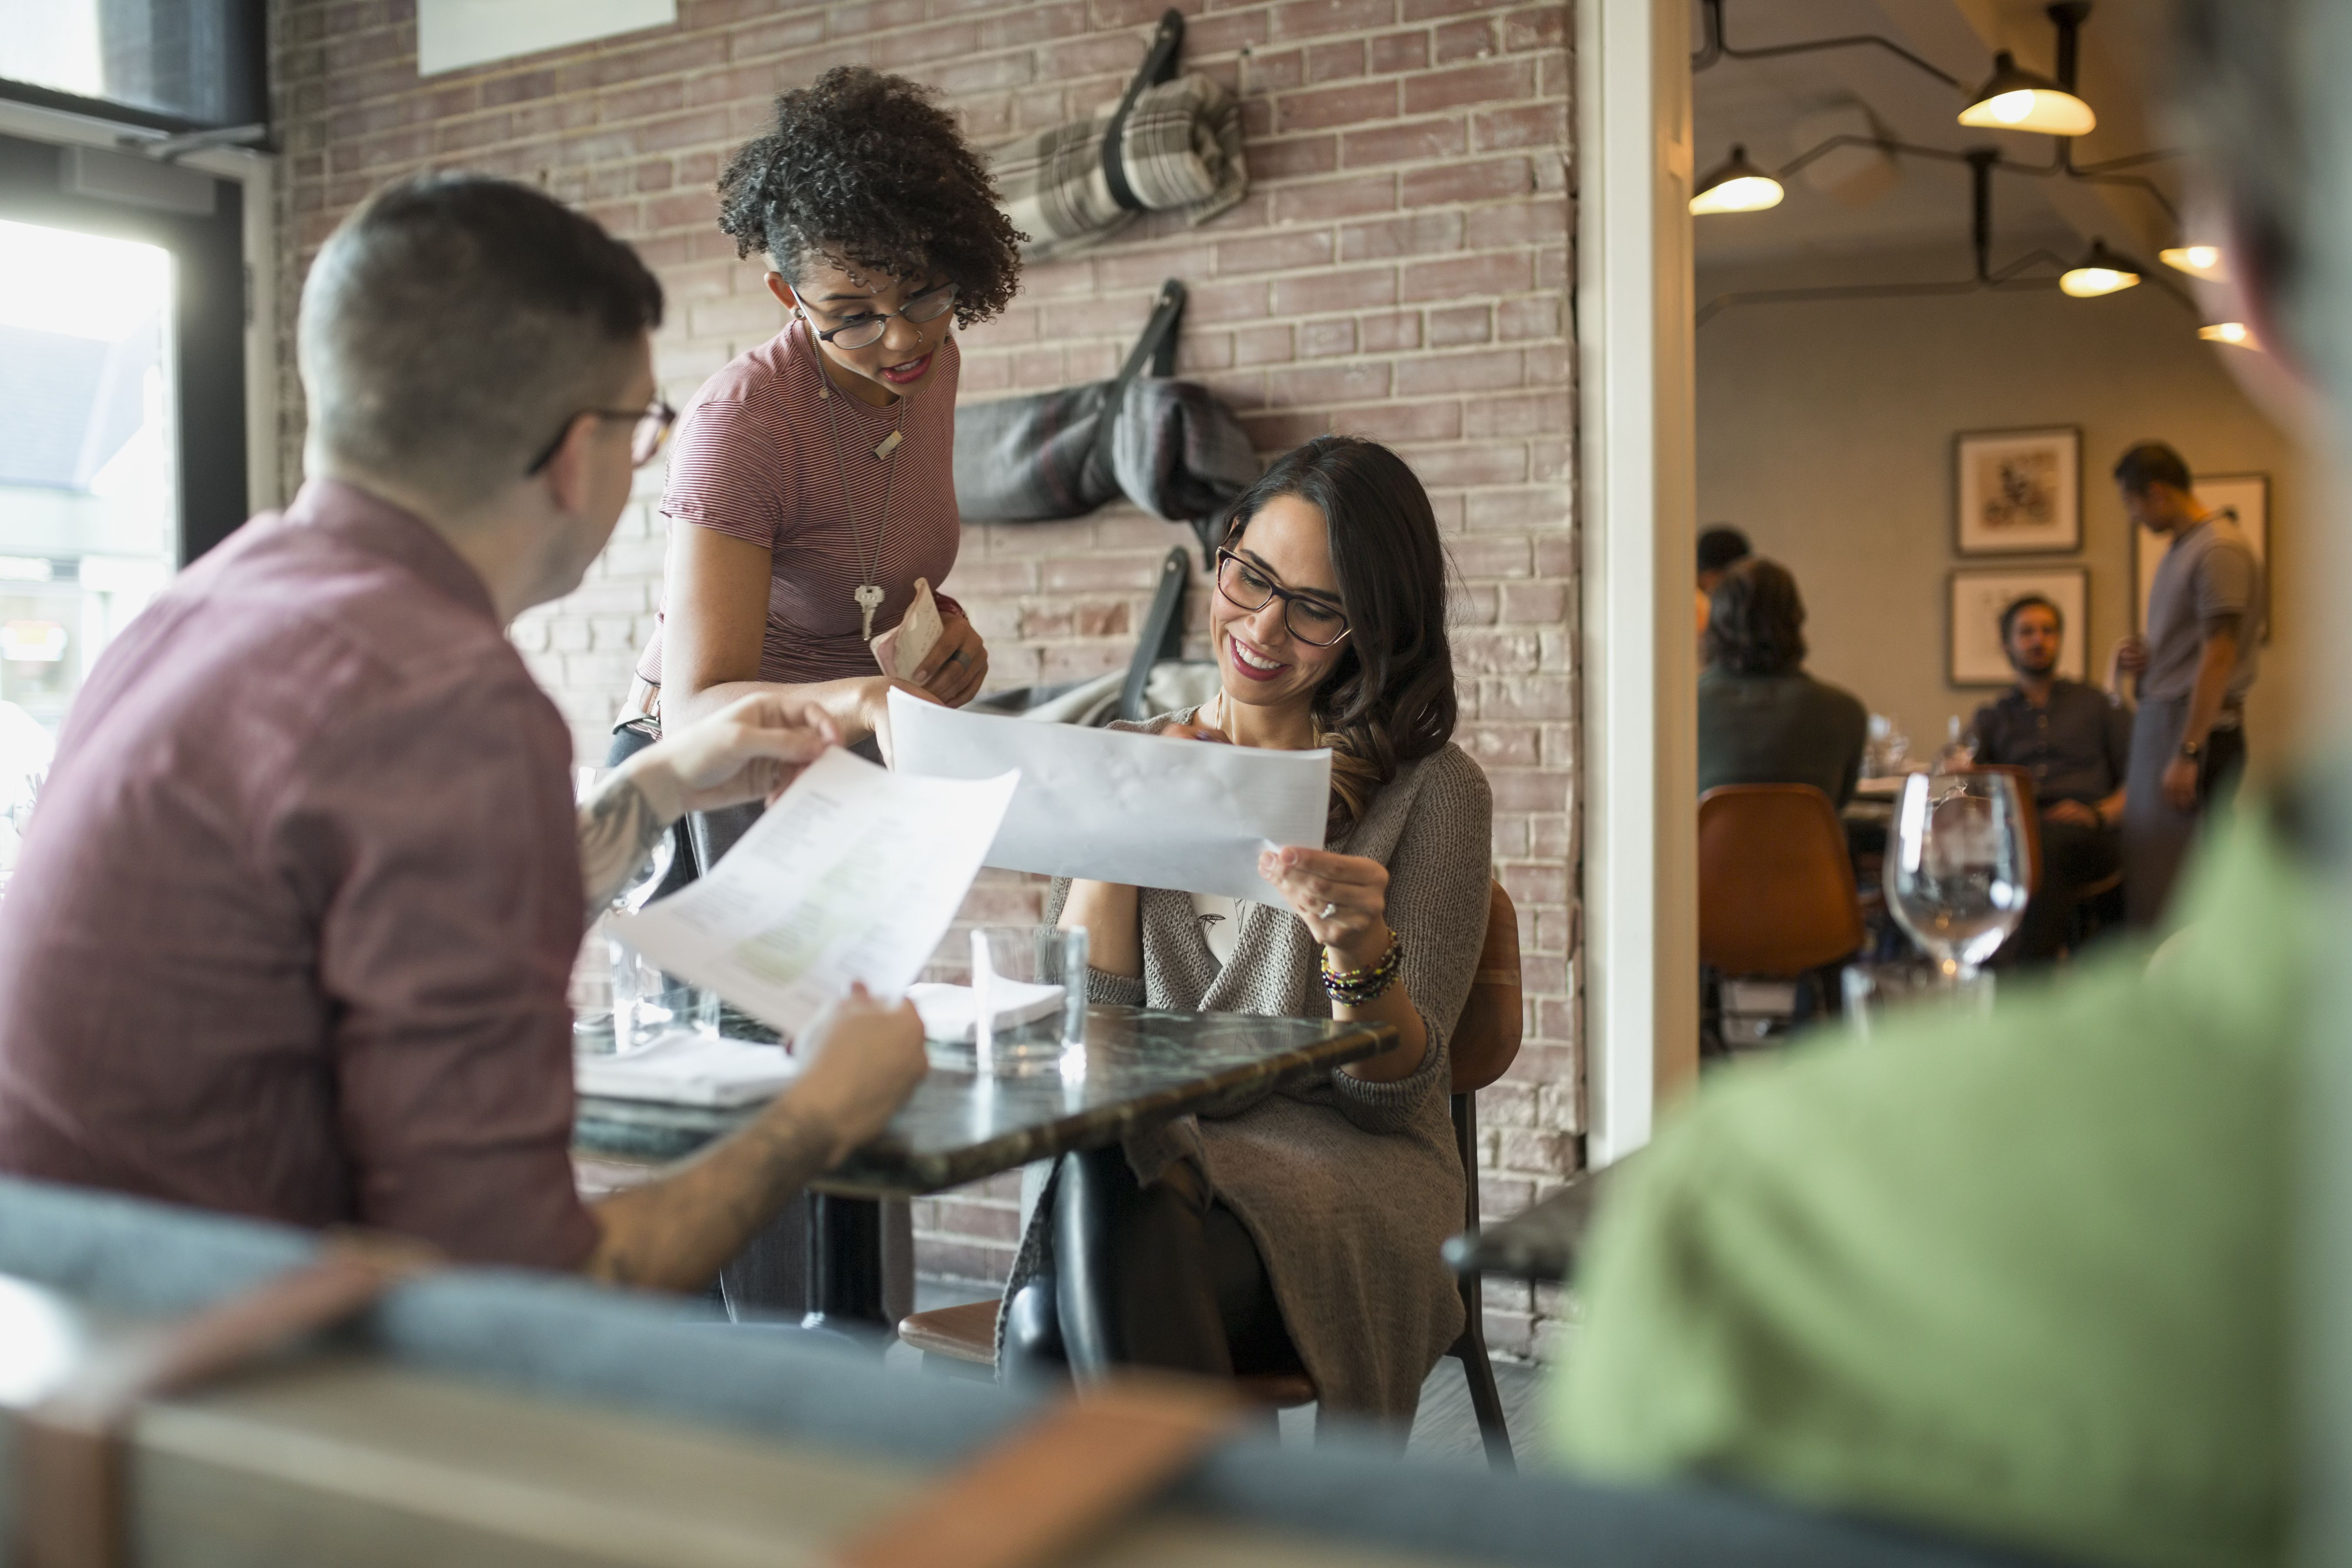 Waitress taking order from couple at restaurant table